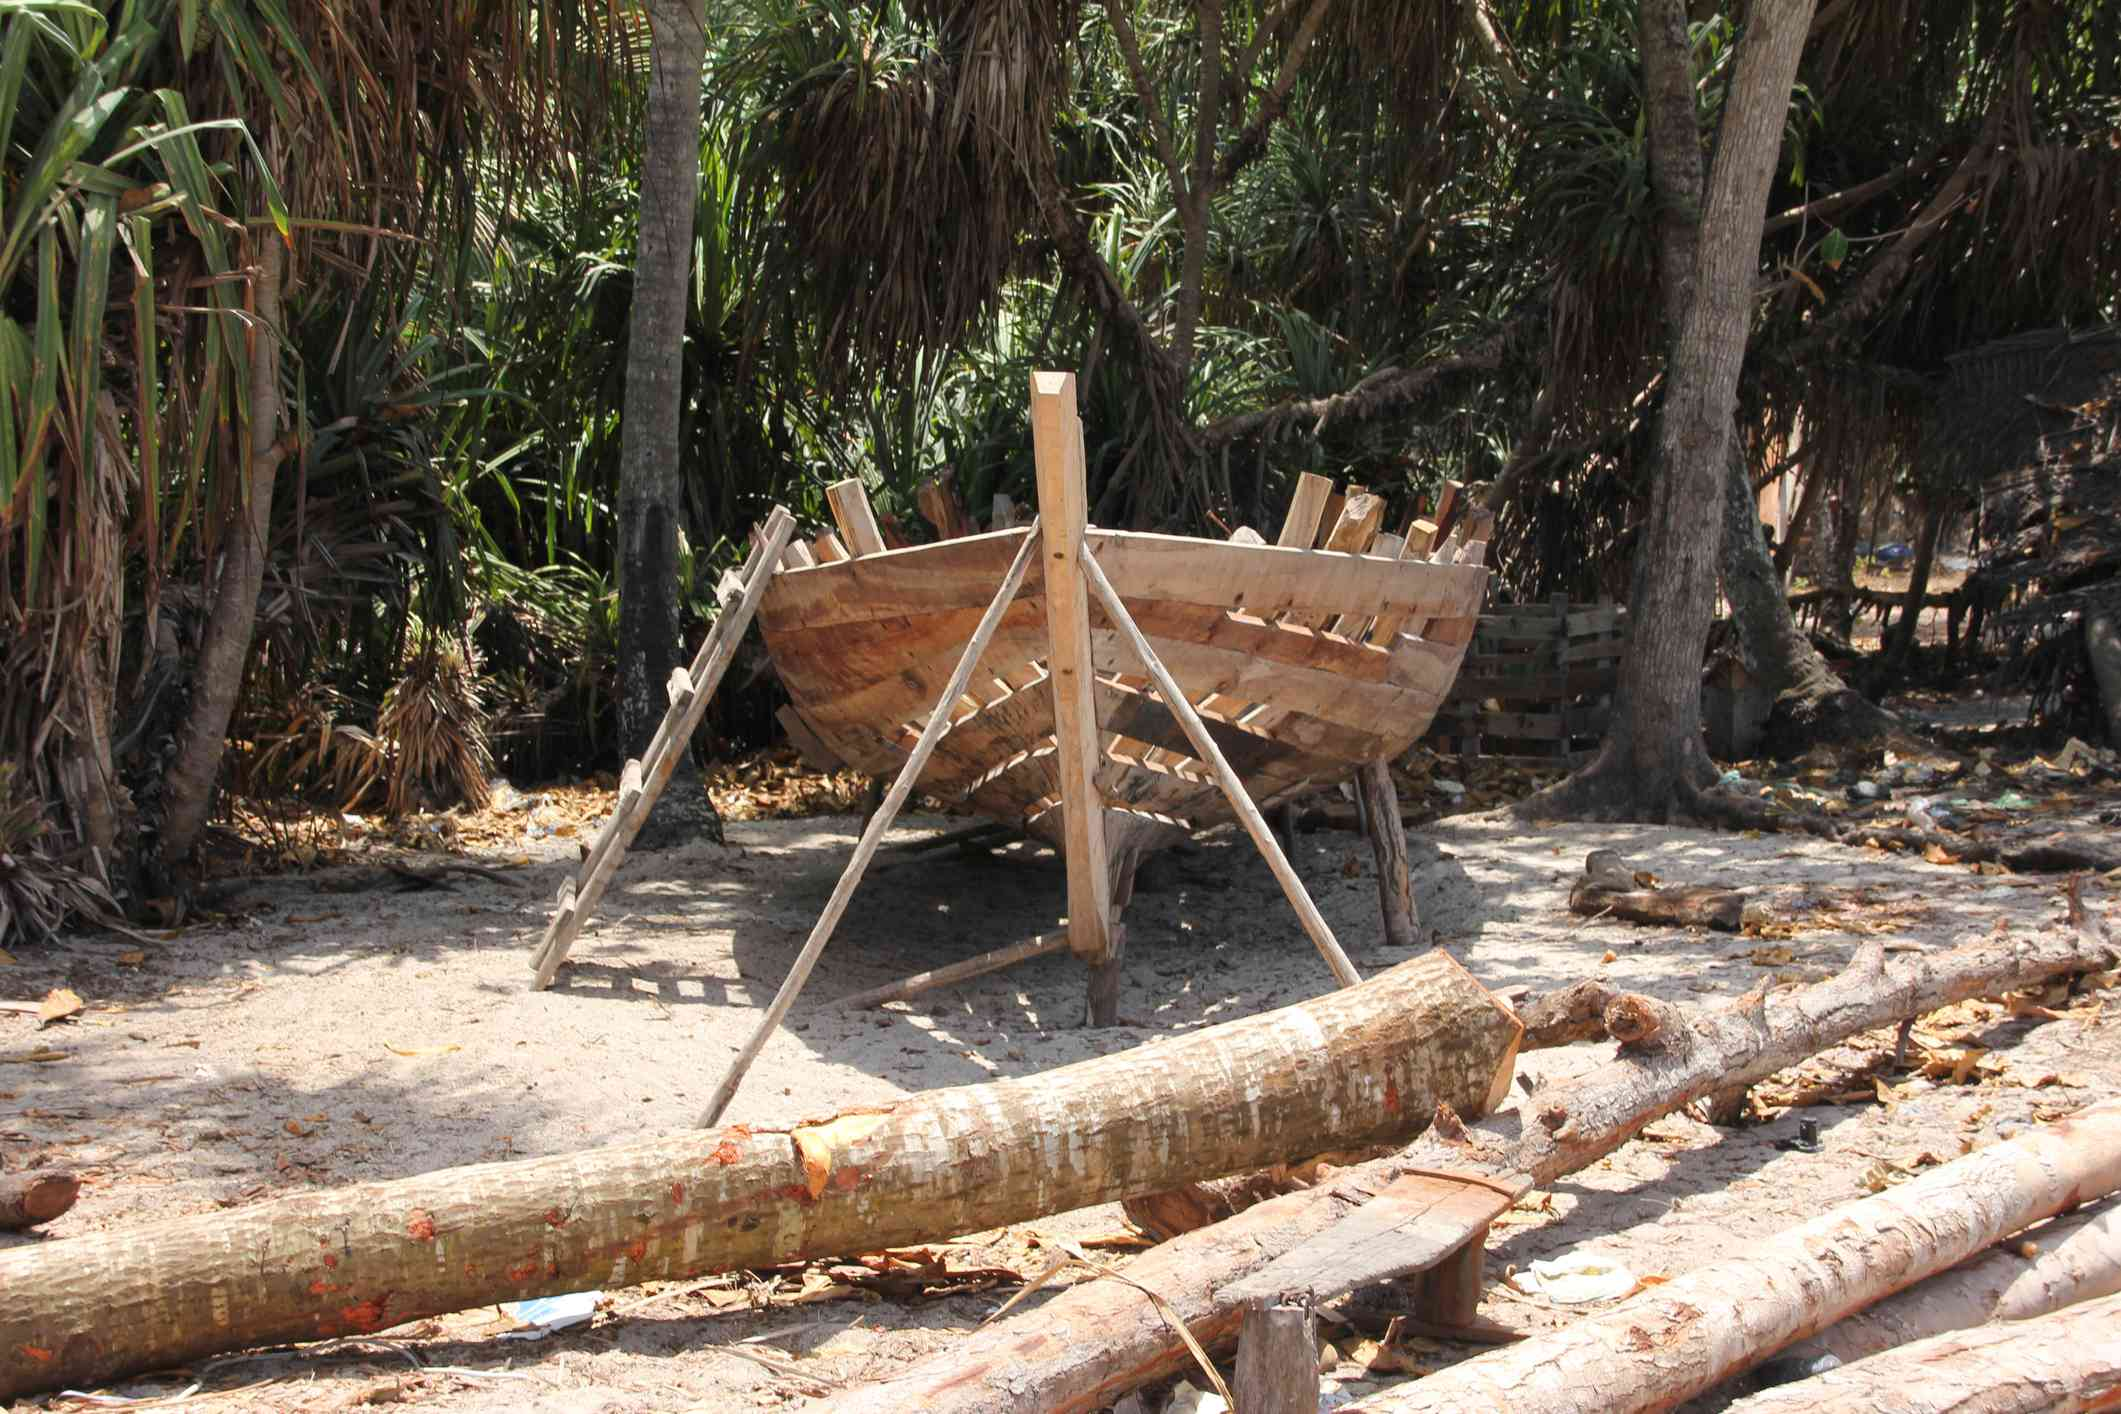 Dhow being built on the beach at Nungwi, Zanzibar